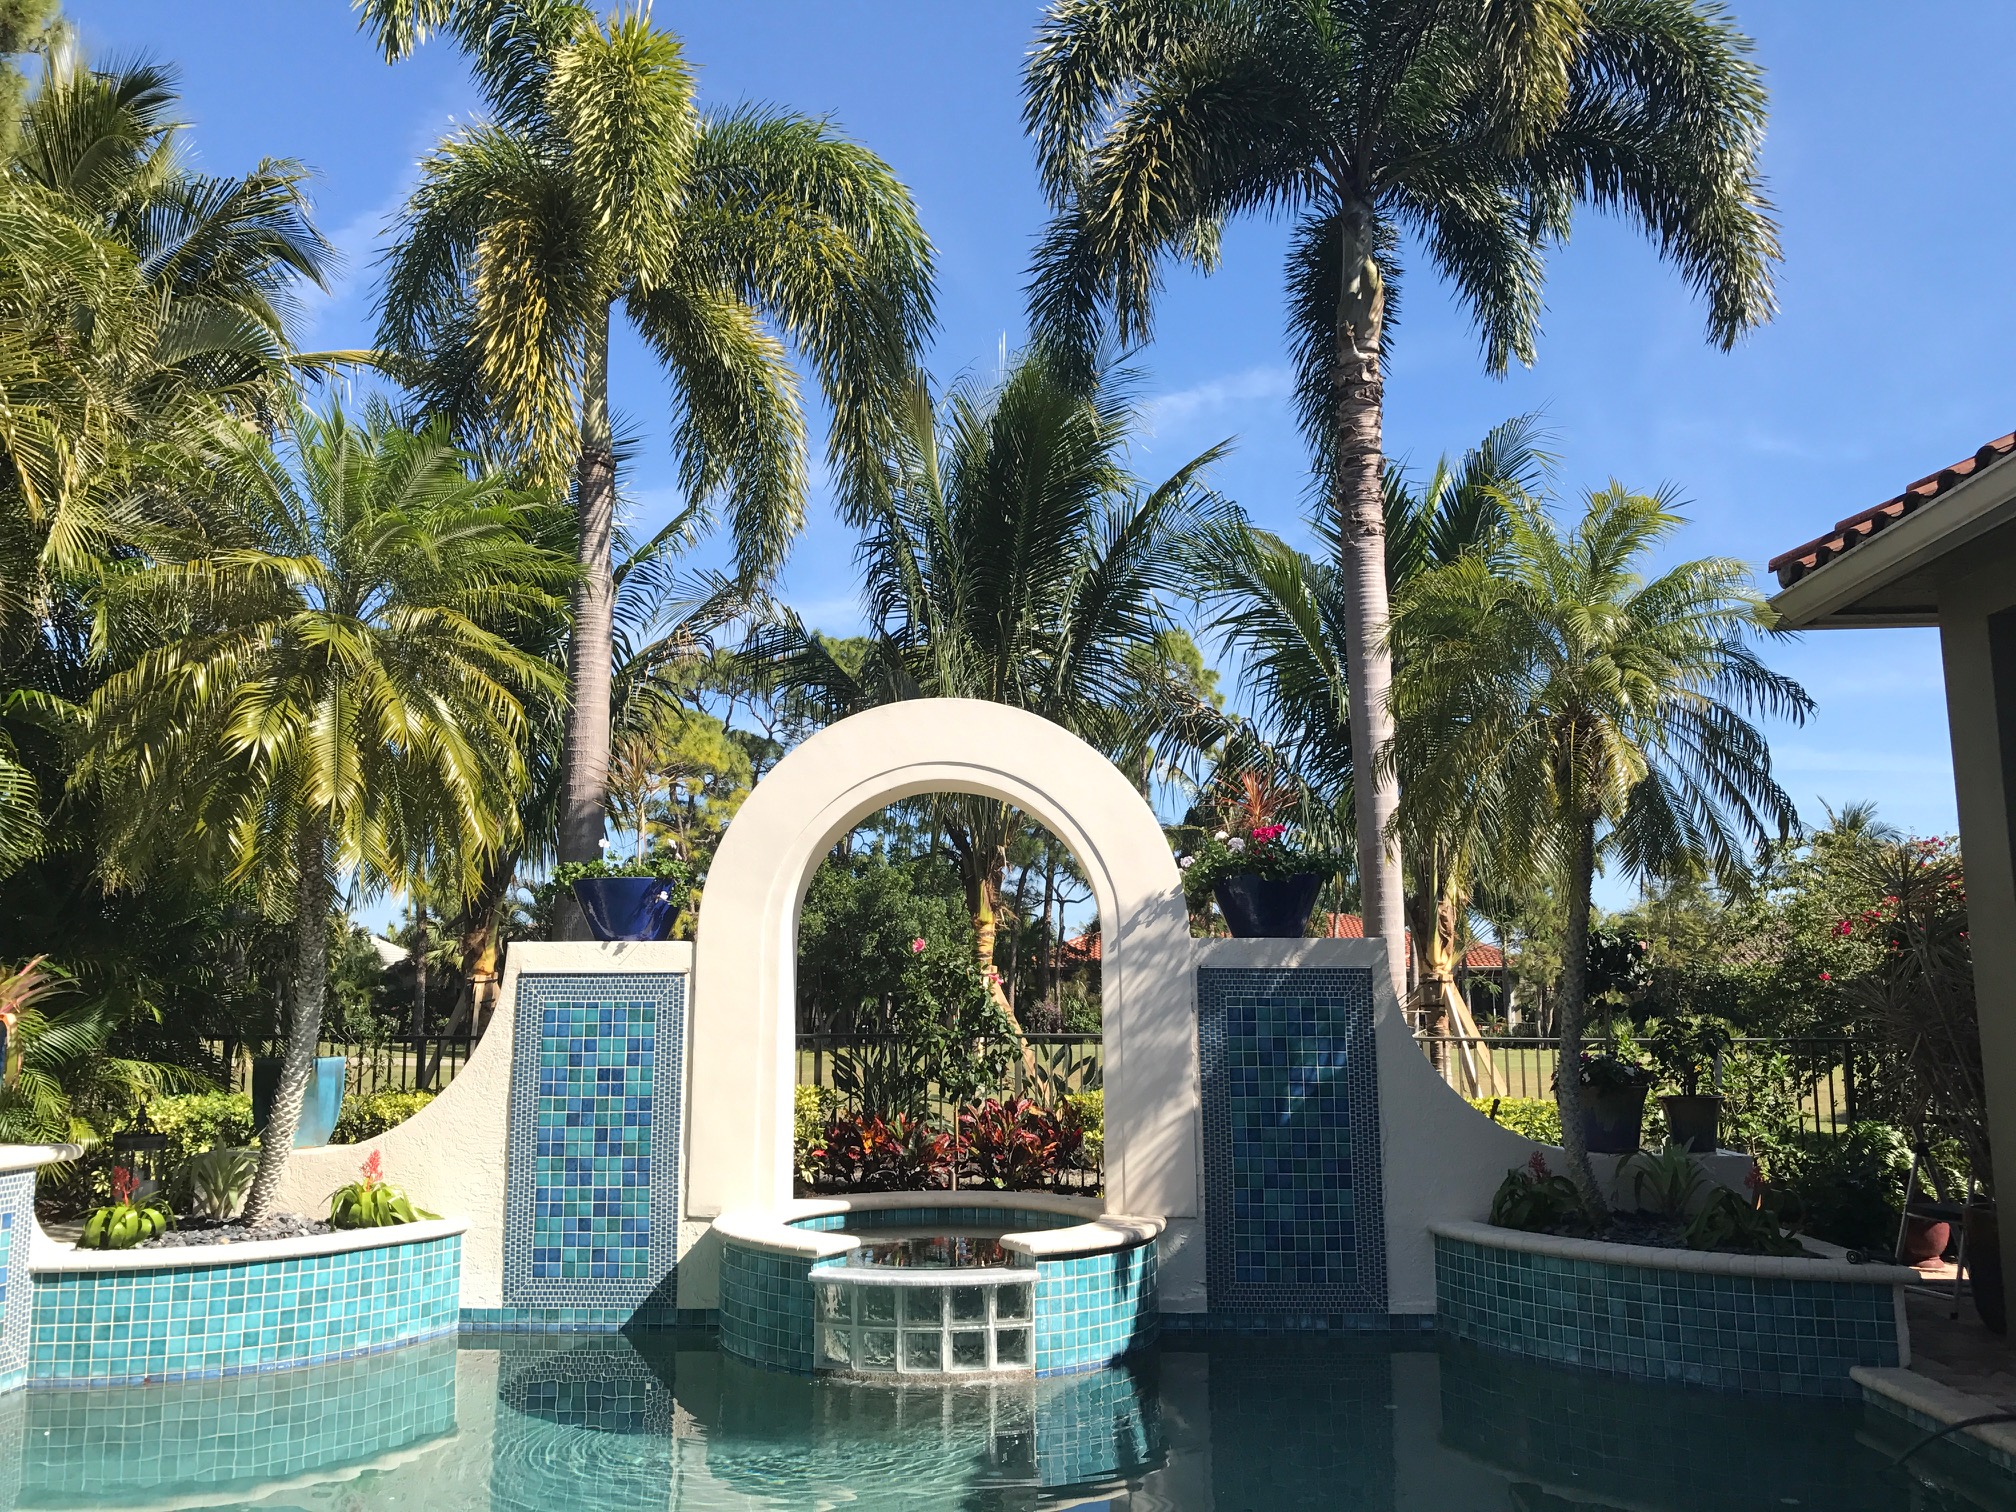 Coconut Palms and Hibiscus Tree Make Great Backdrop for Pool Arch